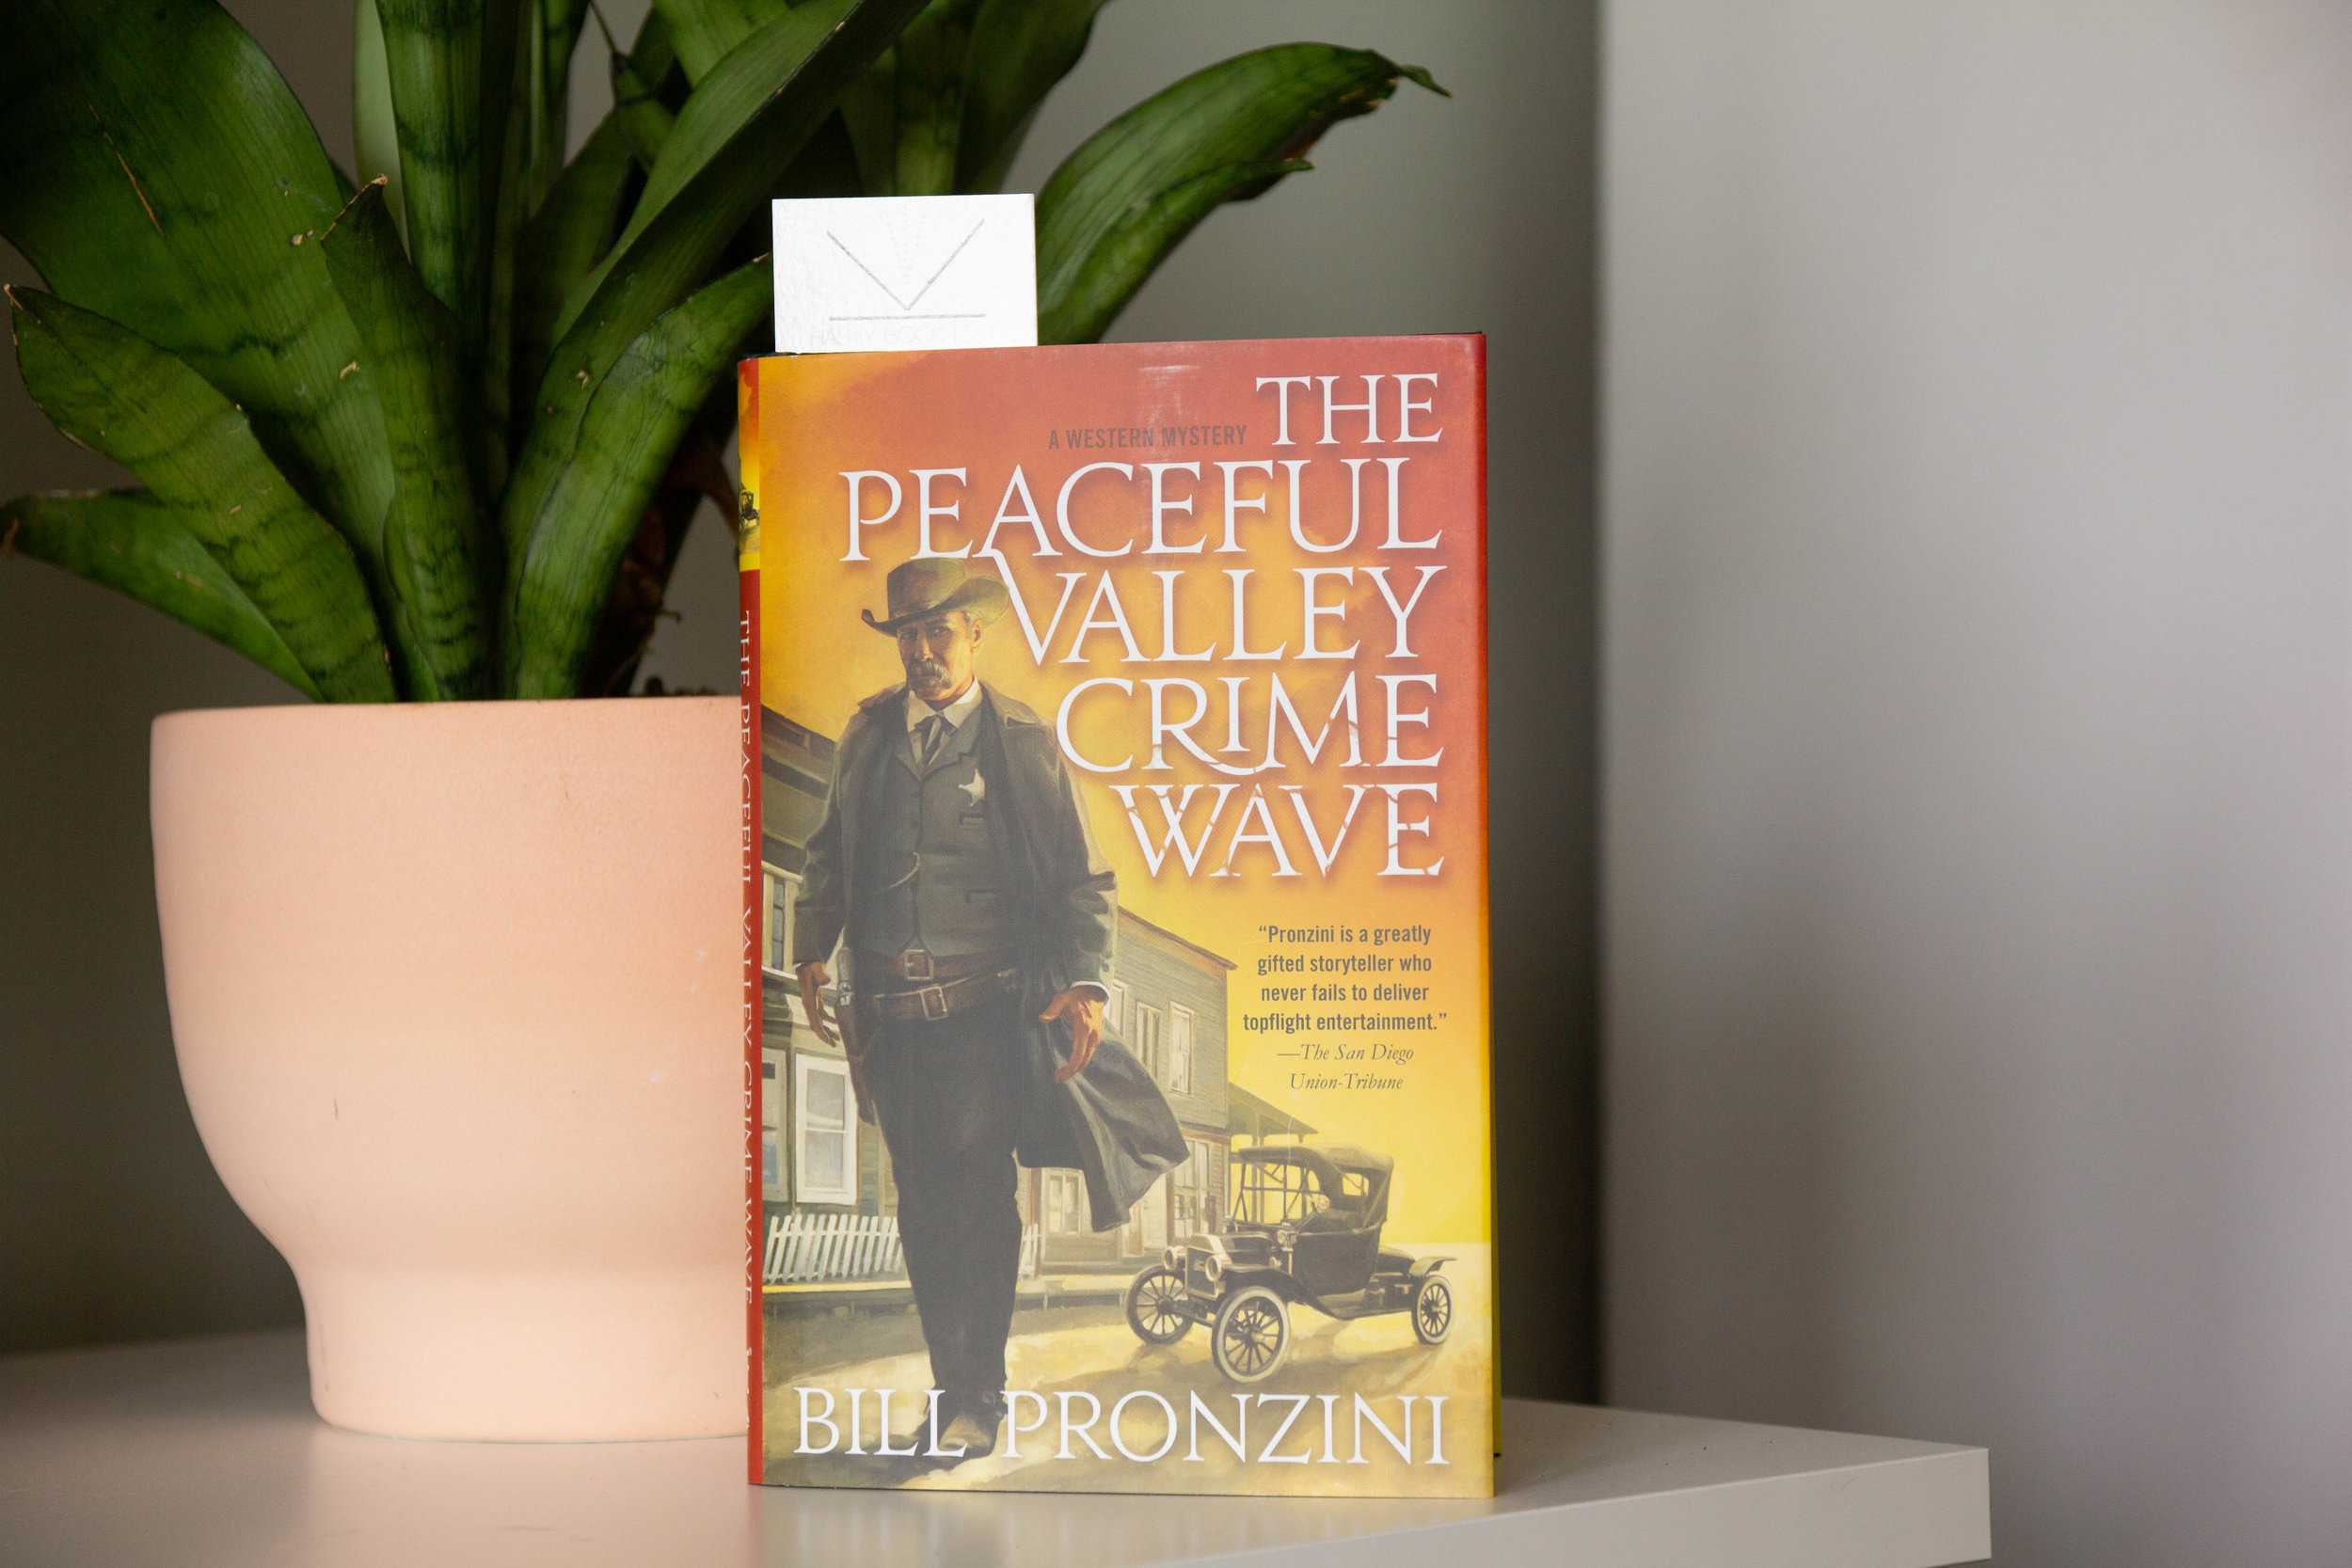 The Peaceful Valley Crime Wave by Bill Pronzini - Bill Pronzini's riveting western mystery, The Peaceful Valley Crime Wave, takes on the modern world with old-fashioned violence--and his Peaceful Valley is anything but…